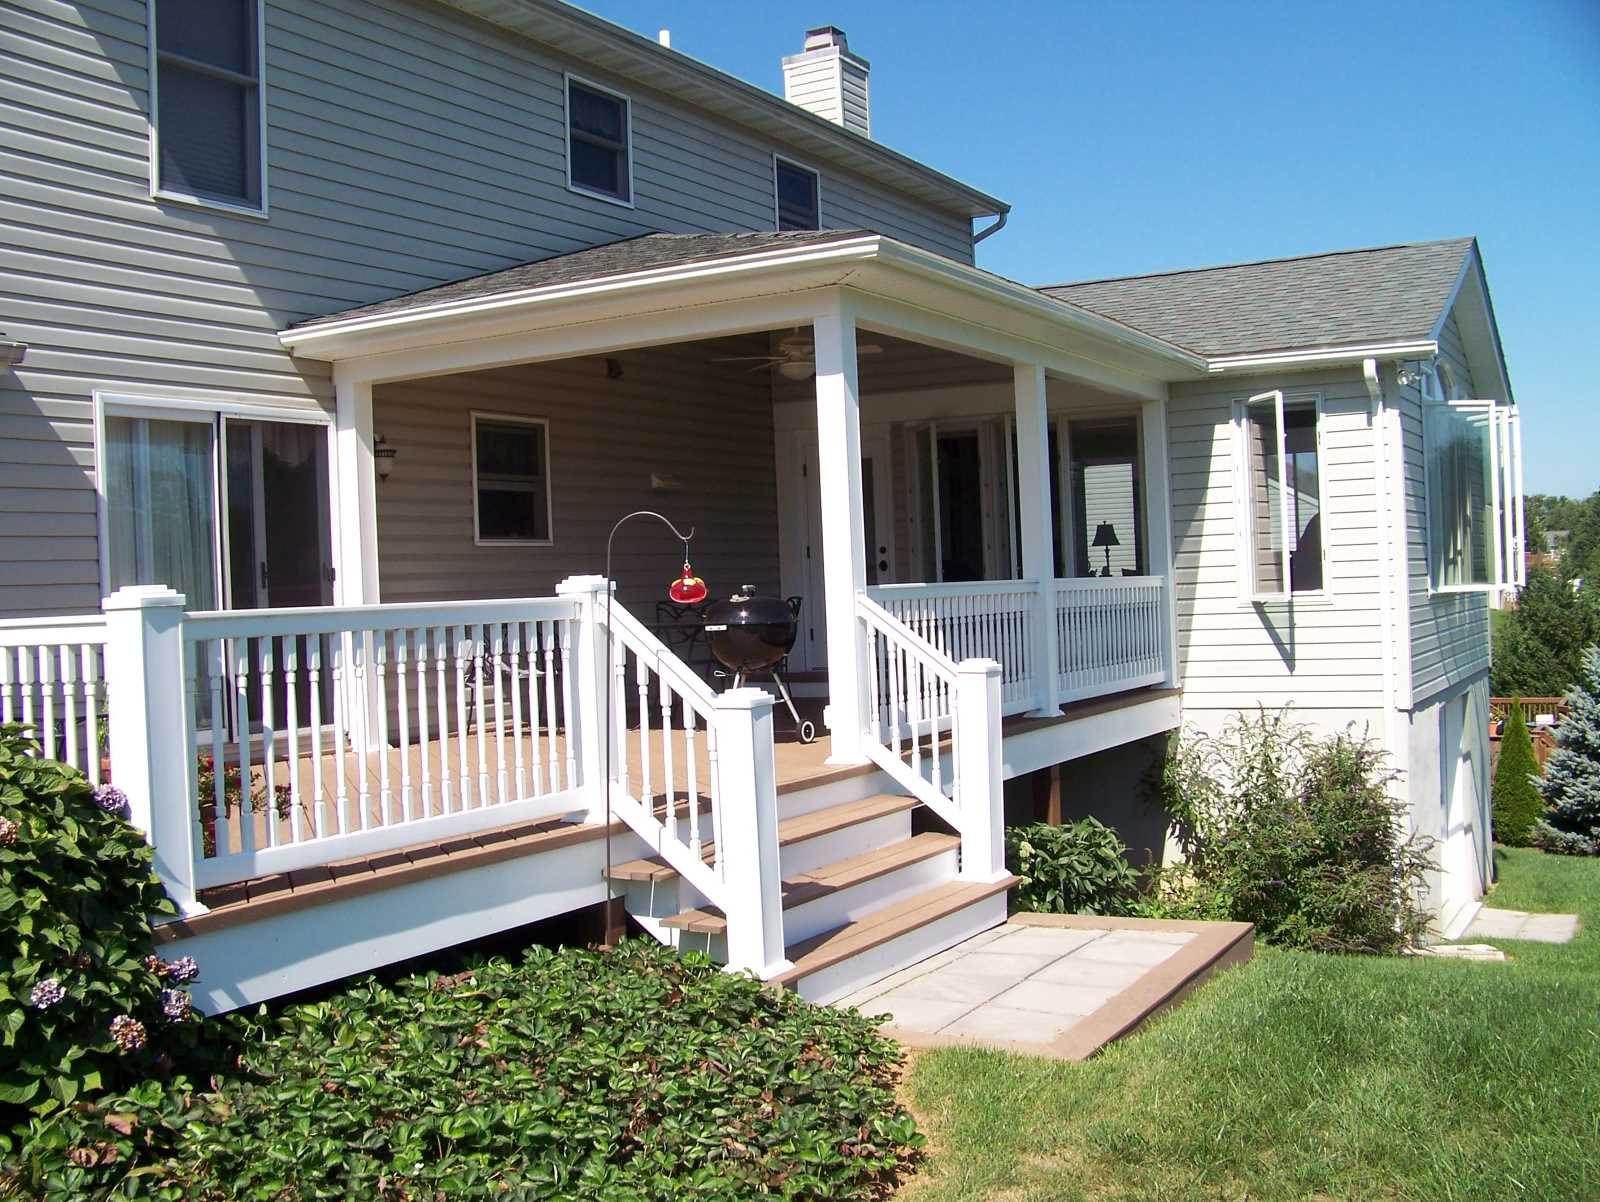 Addition porch and Deck